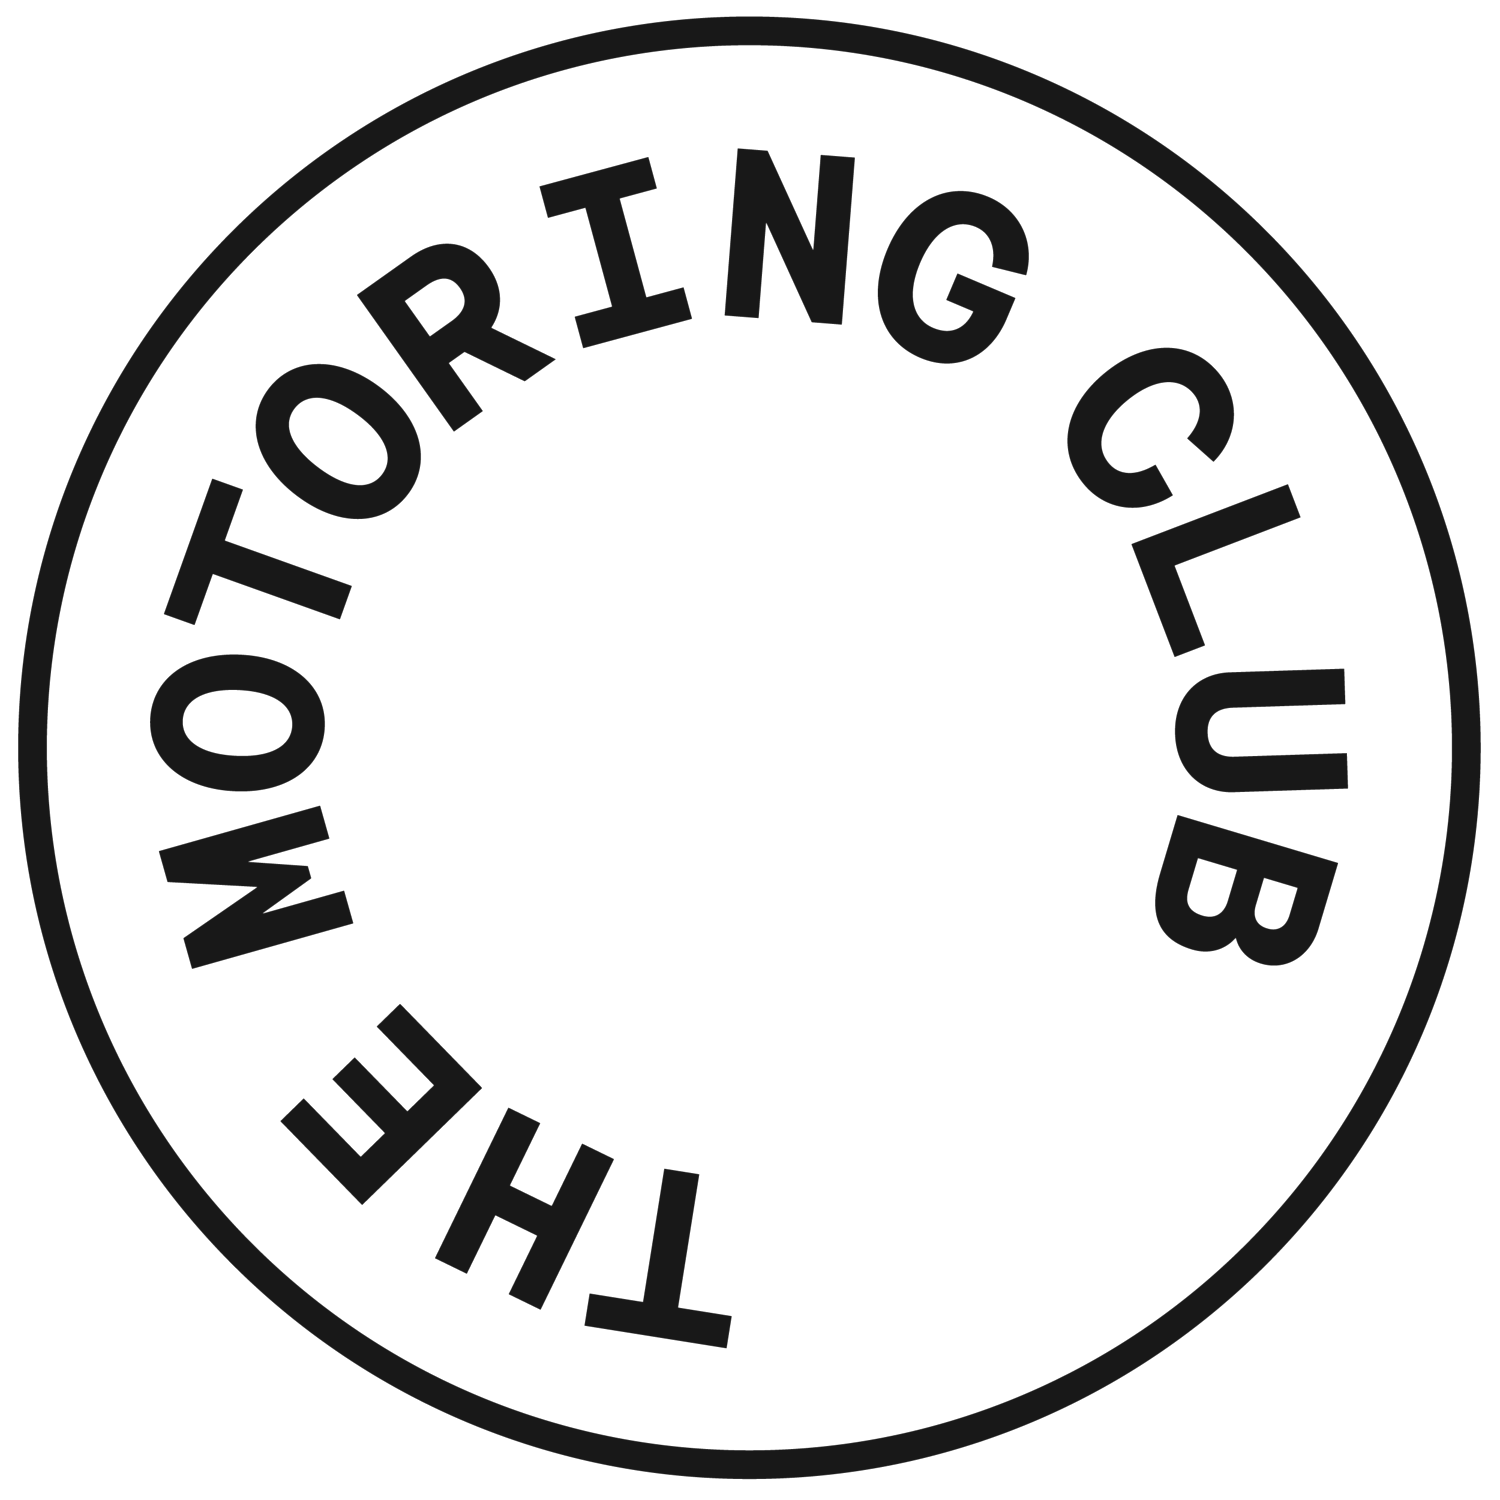 The Motoring Club